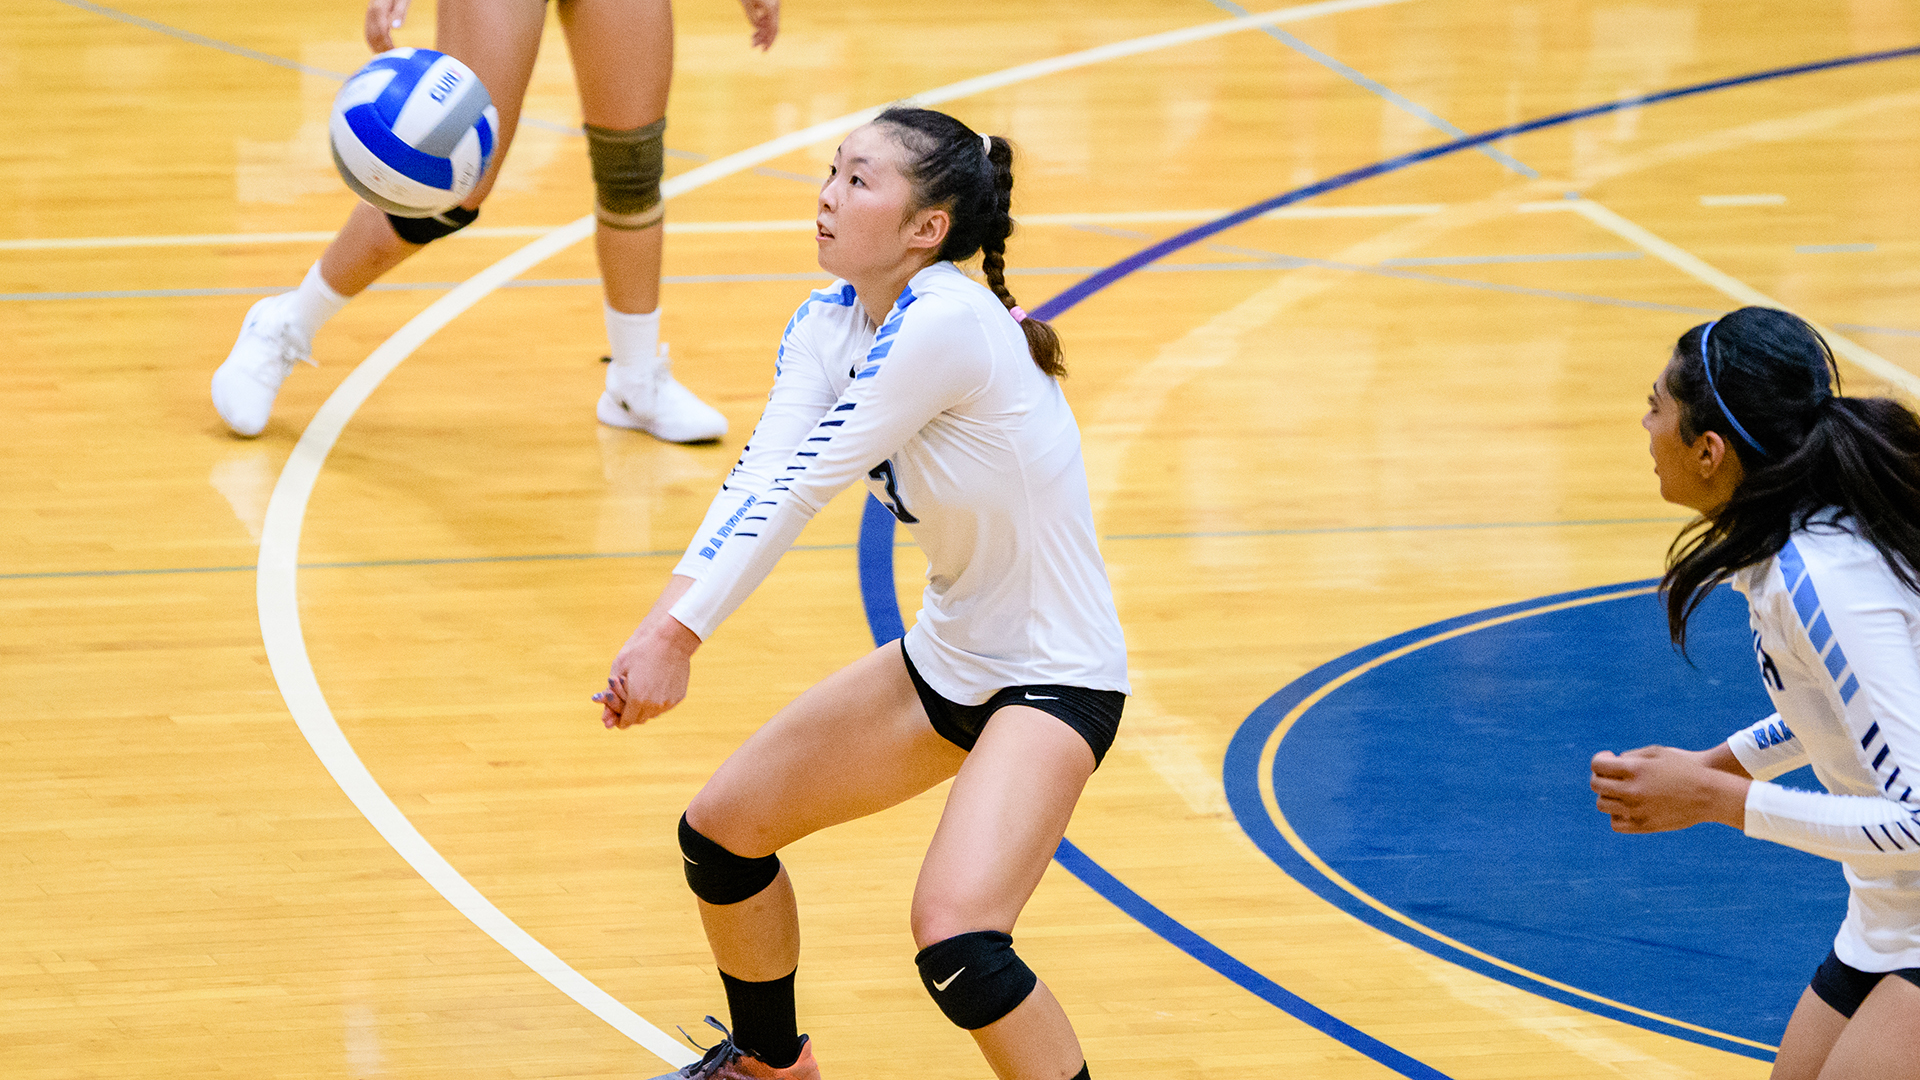 Stella Chung '21 Baruch playing volleyball